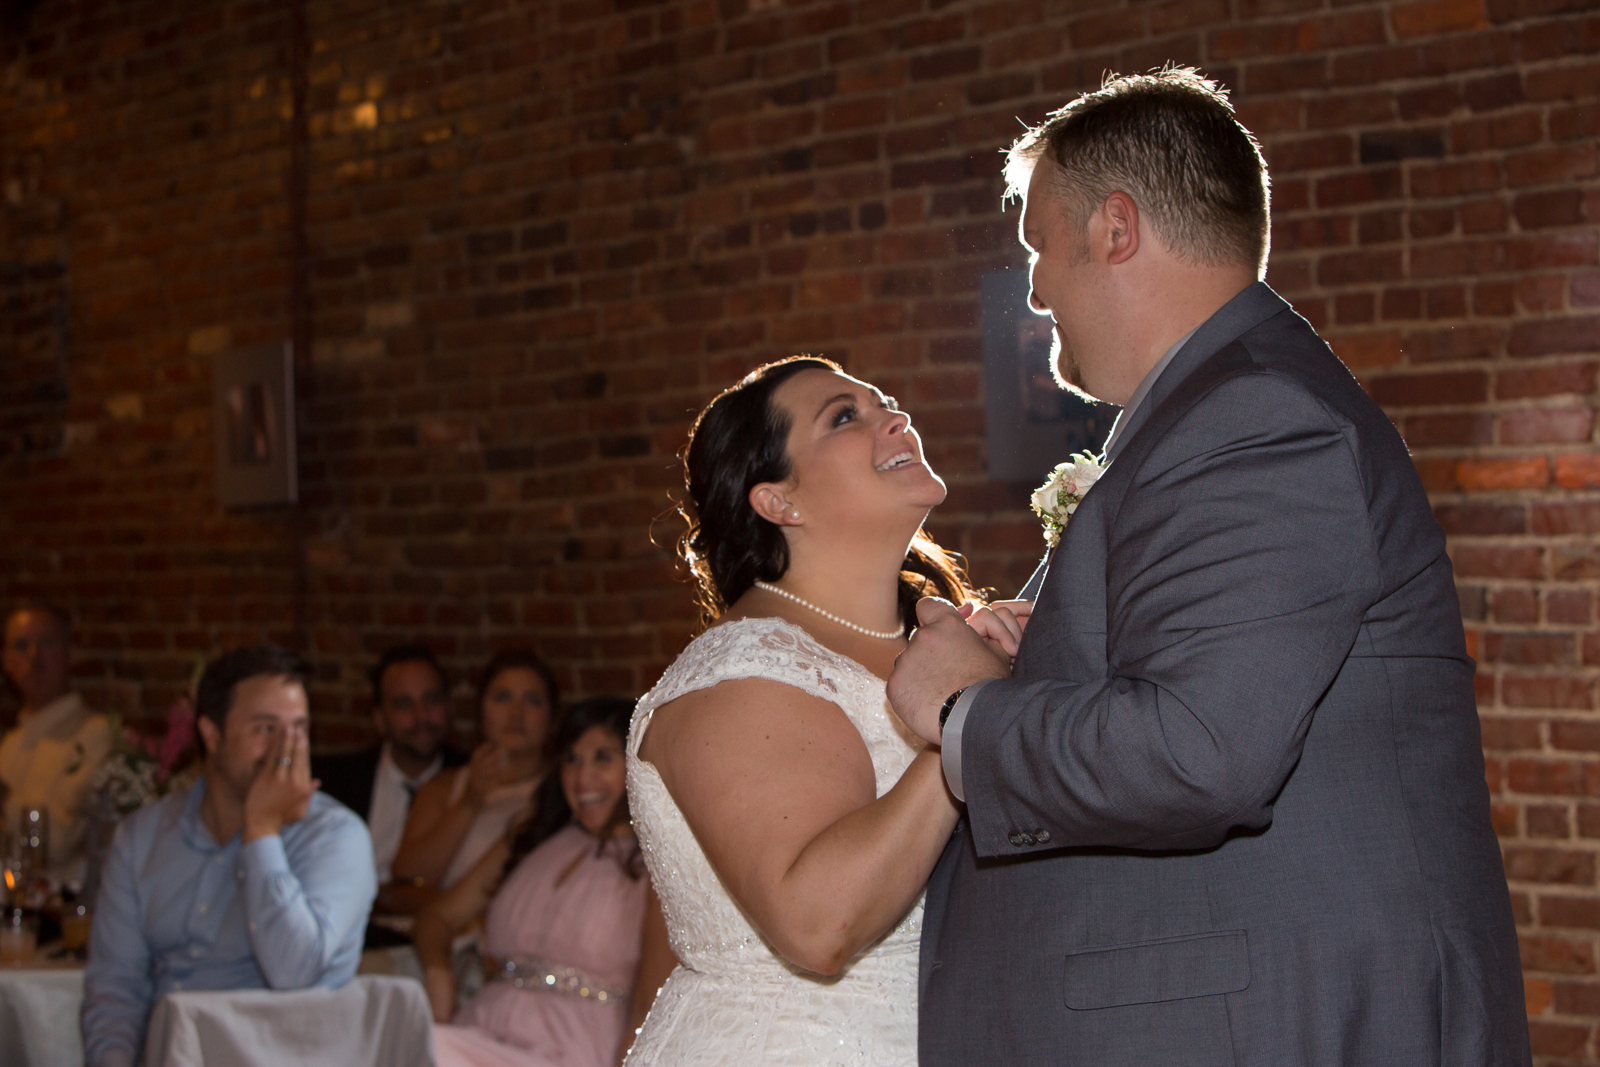 The Horton Building  in Nashville with its beautiful brick walls and reclaimed wood floors is a beautiful venue for a wedding reception. Jen and Taylor had a very sweet and romantic first dance.